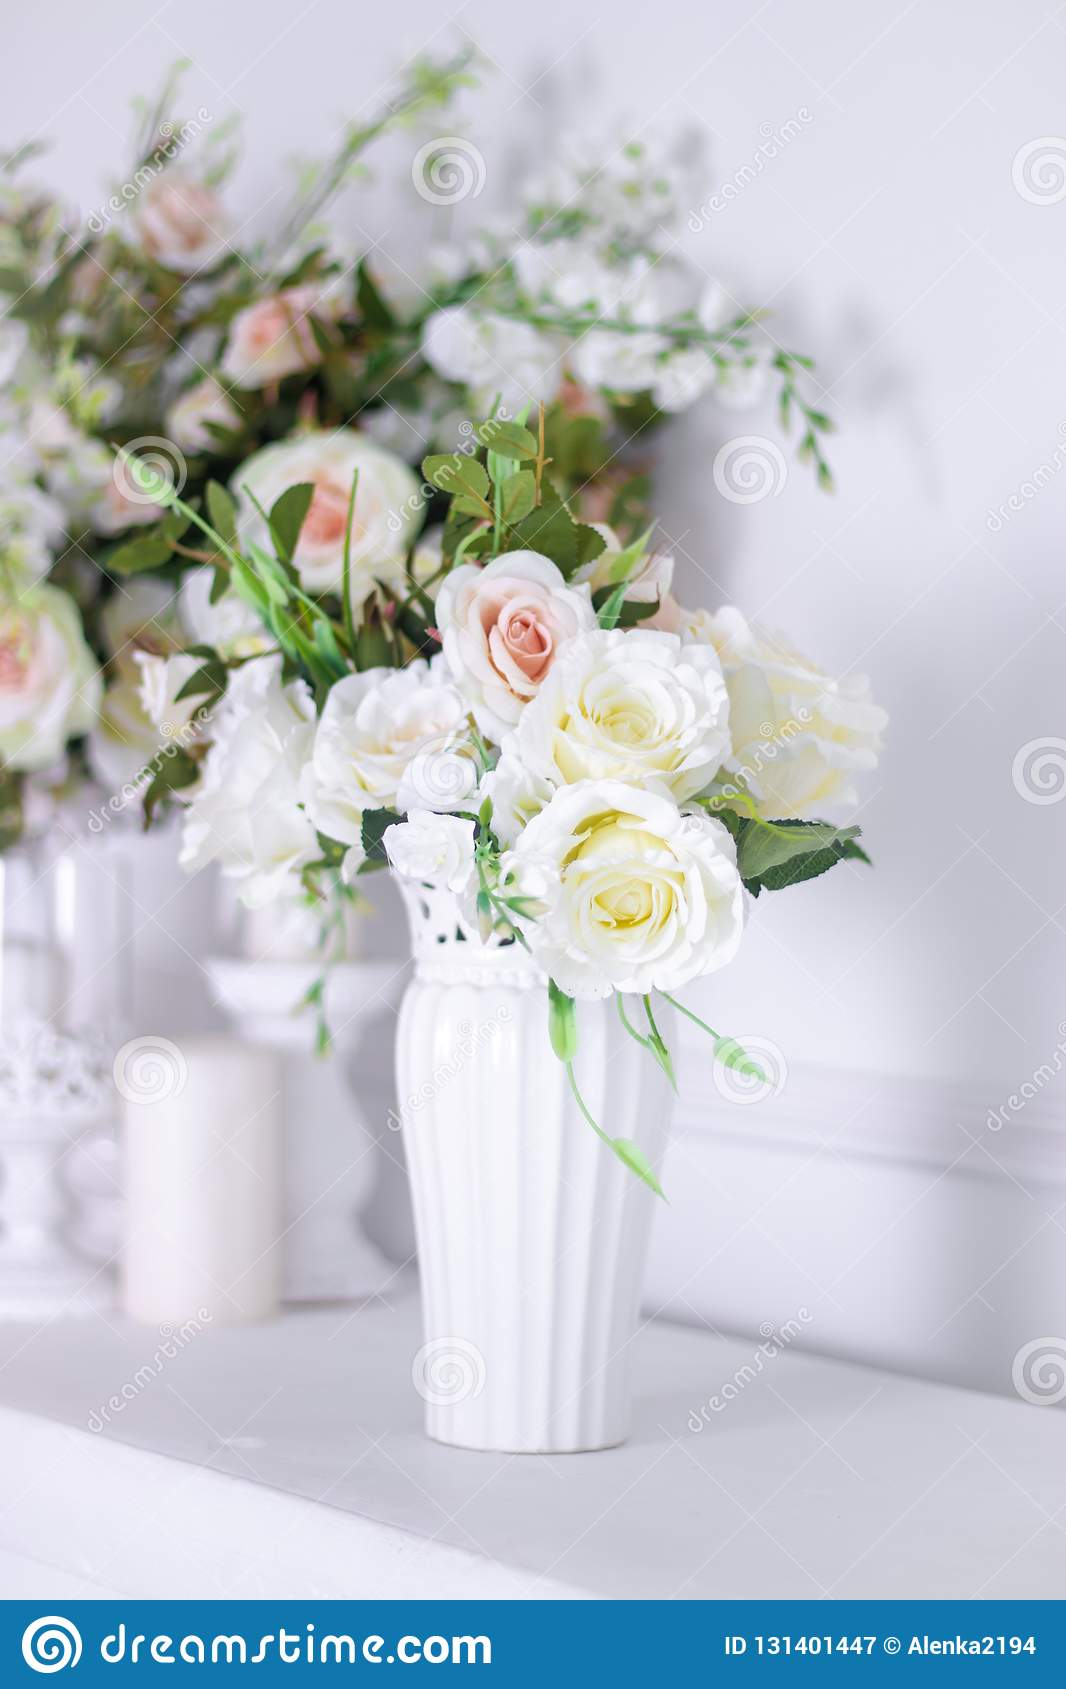 Wedding Bouquet Of White Roses In A Vase. Wedding